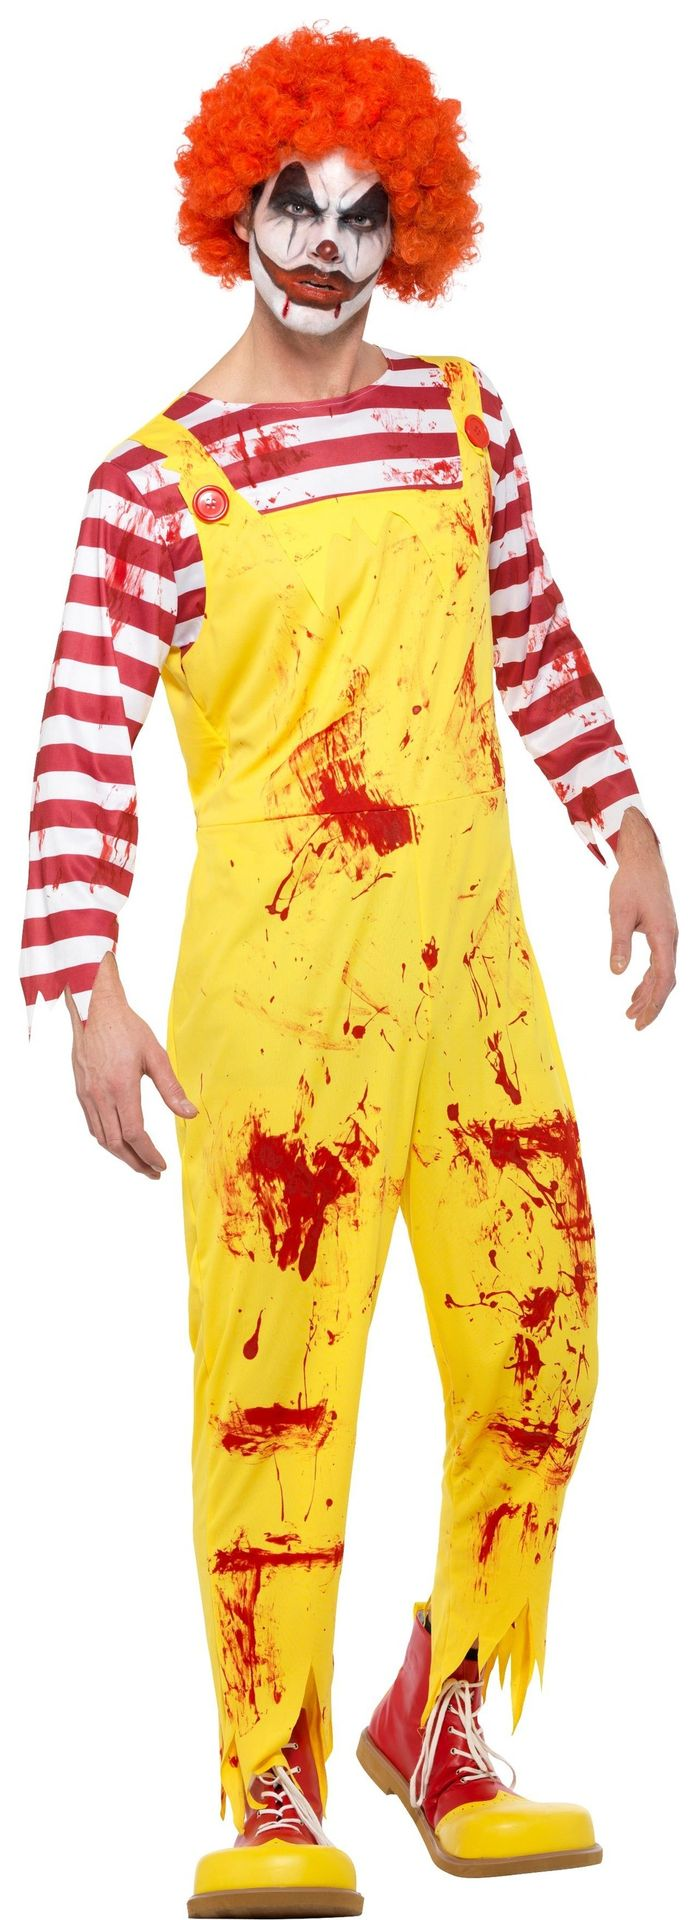 Mc Donalds Killer clown